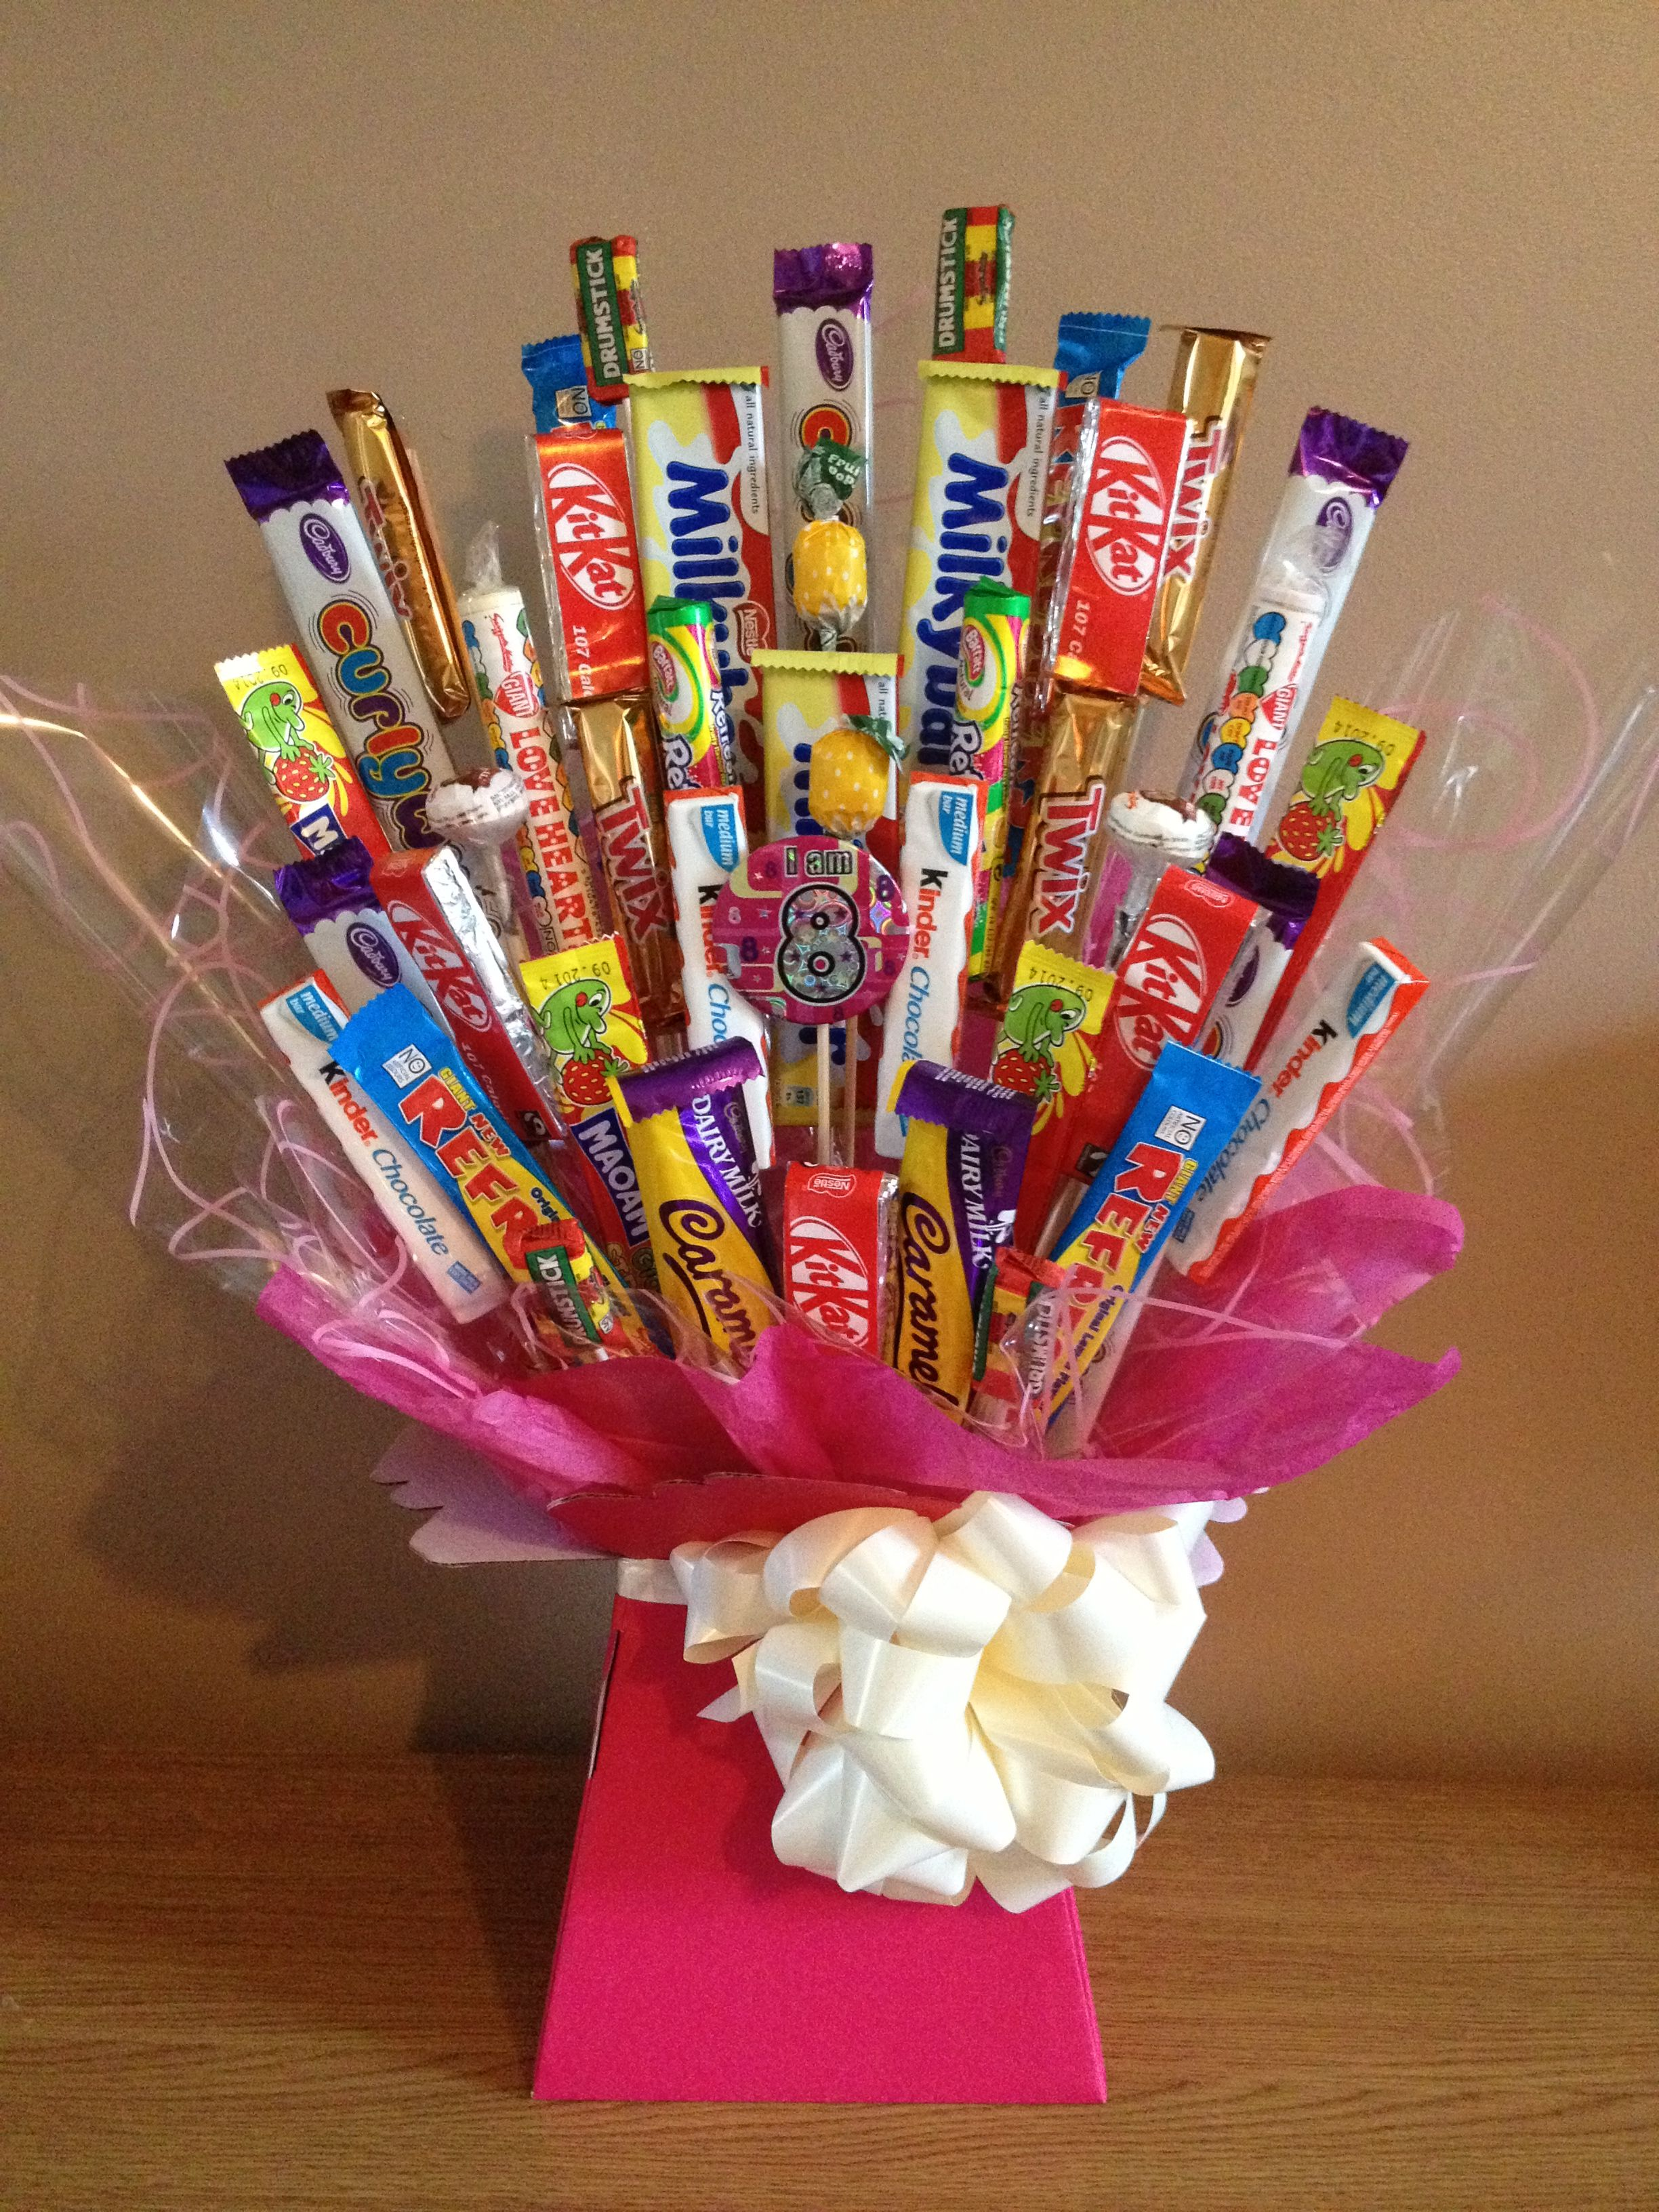 Homemade gift ideas chocolate sweet candy bouquet with homemade gift ideas chocolate sweet candy bouquet with birthday badge perfect for izmirmasajfo Choice Image